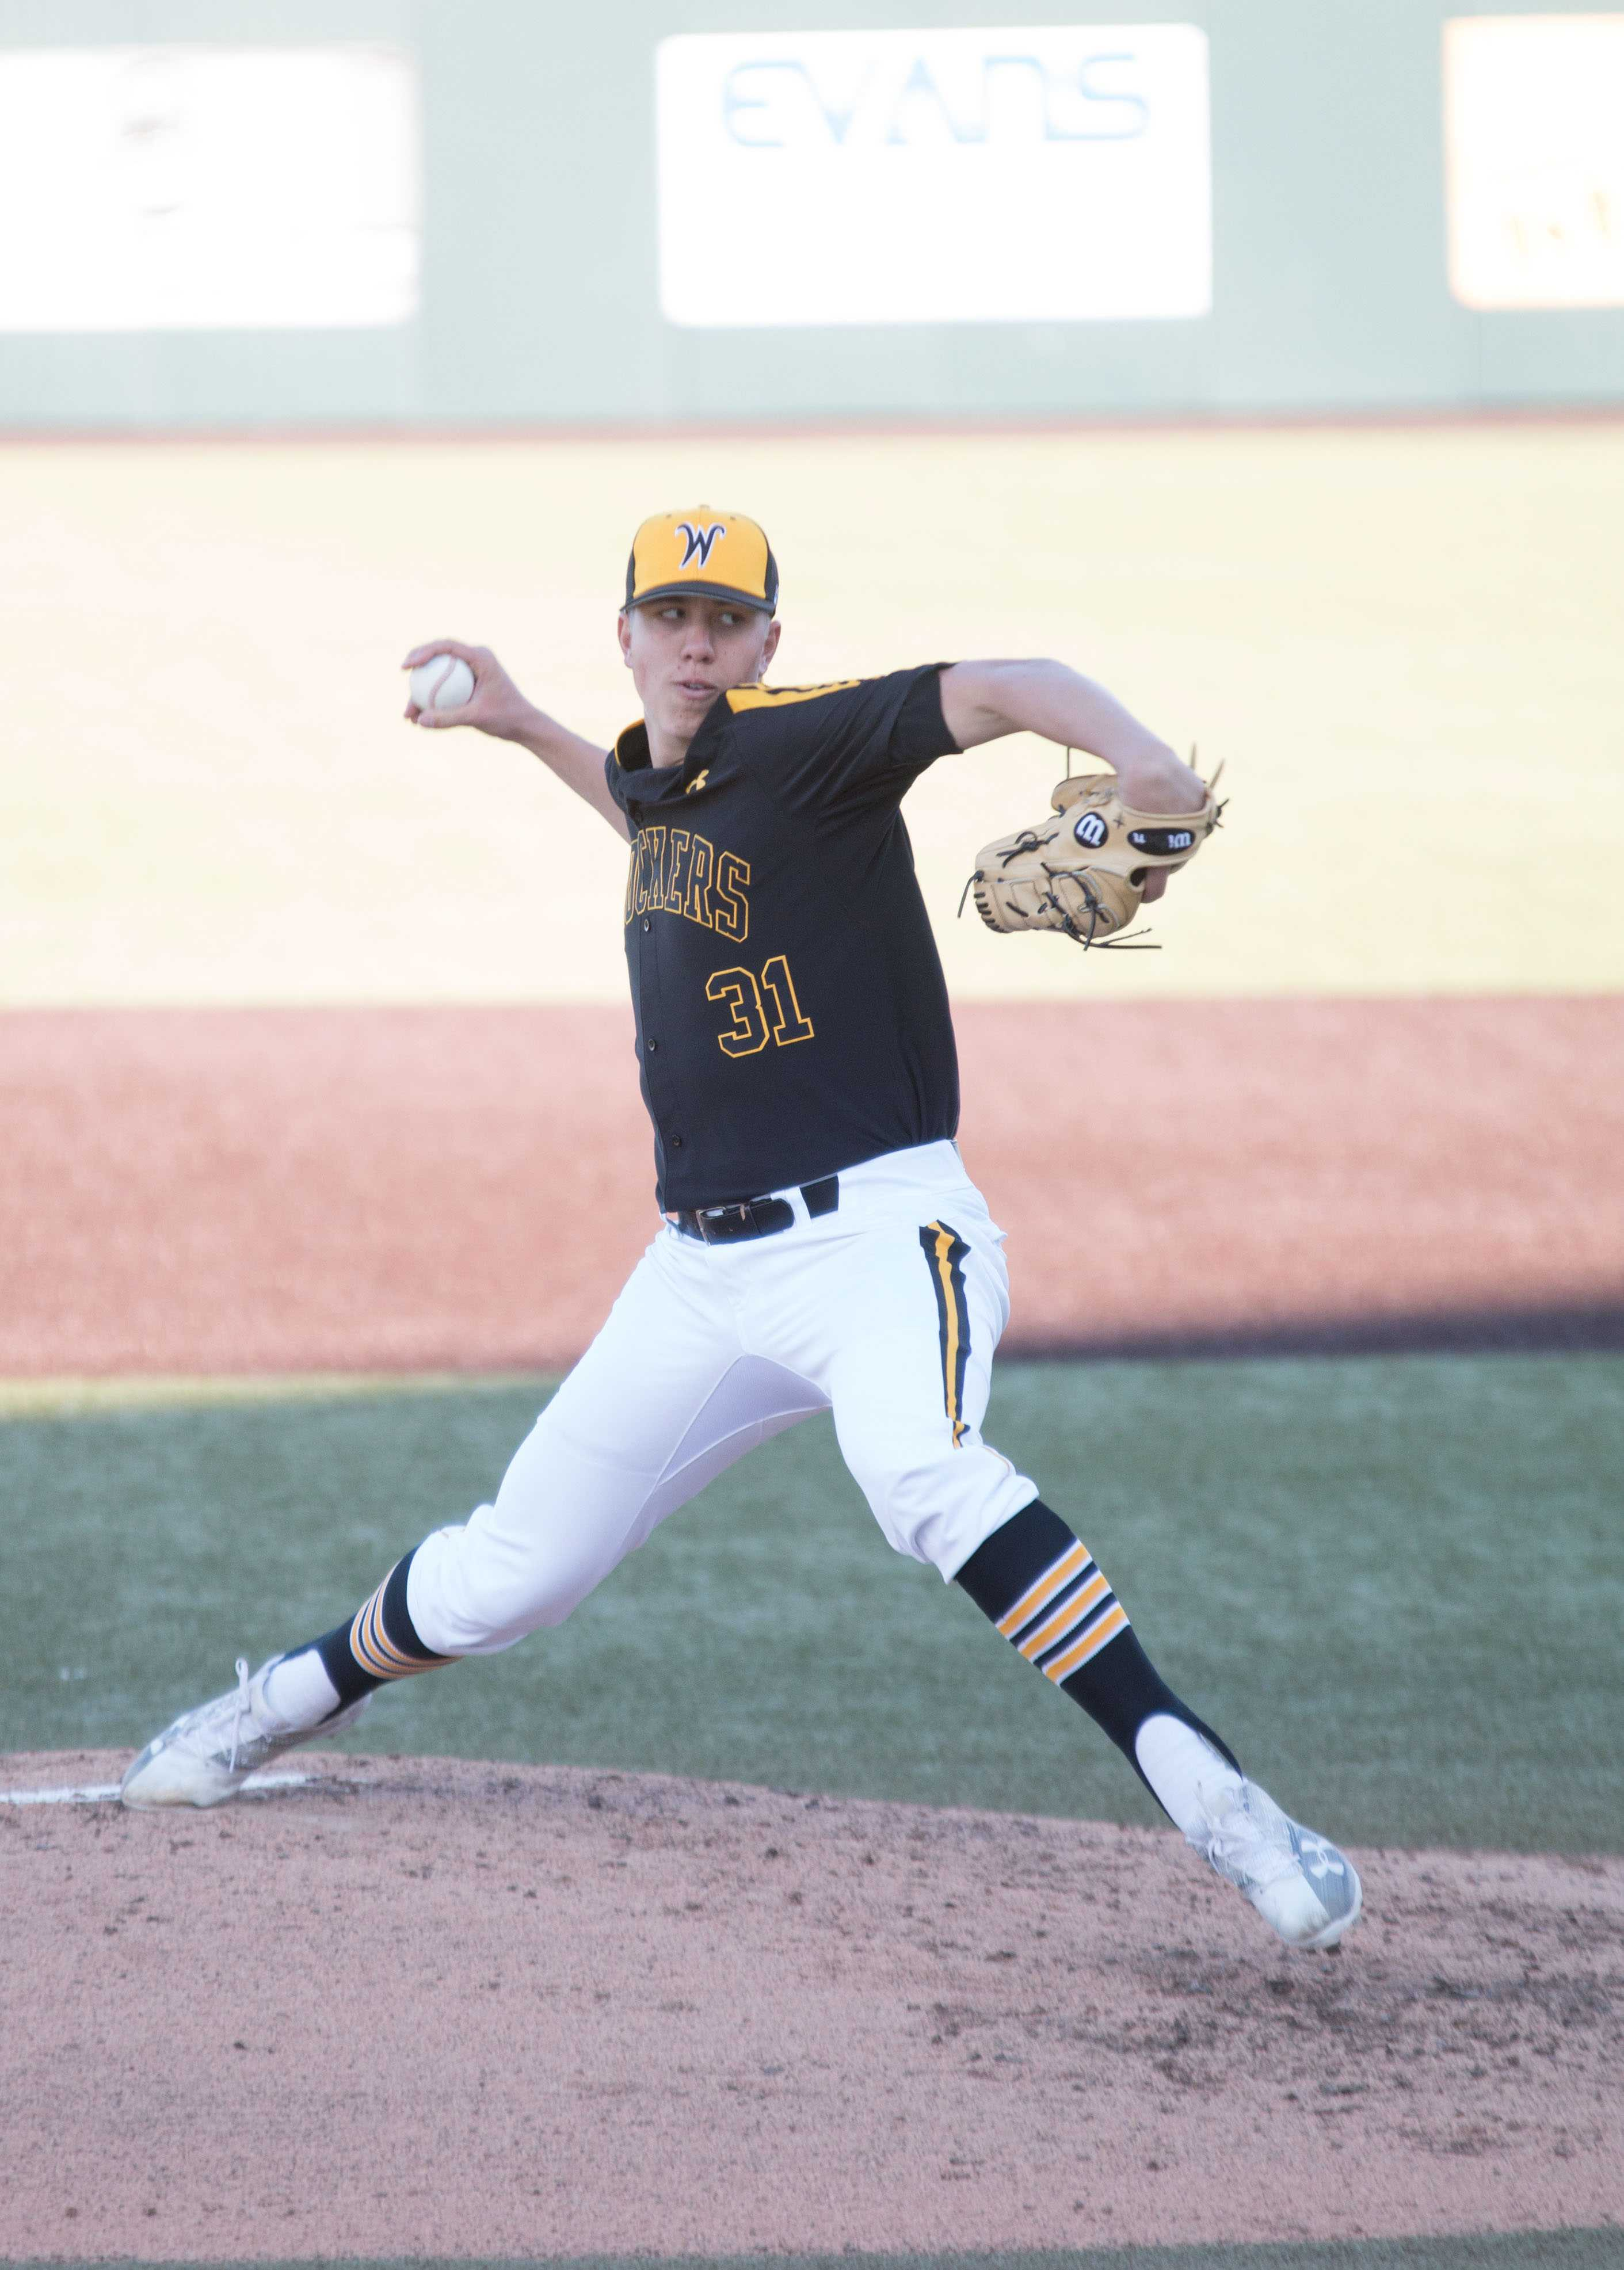 Sophomore Connor Lungwitz winds up a pitch against the Mavericks. Shockers won the game against Omaha with a score of 8-0, making this their seventh consecutive win this season.